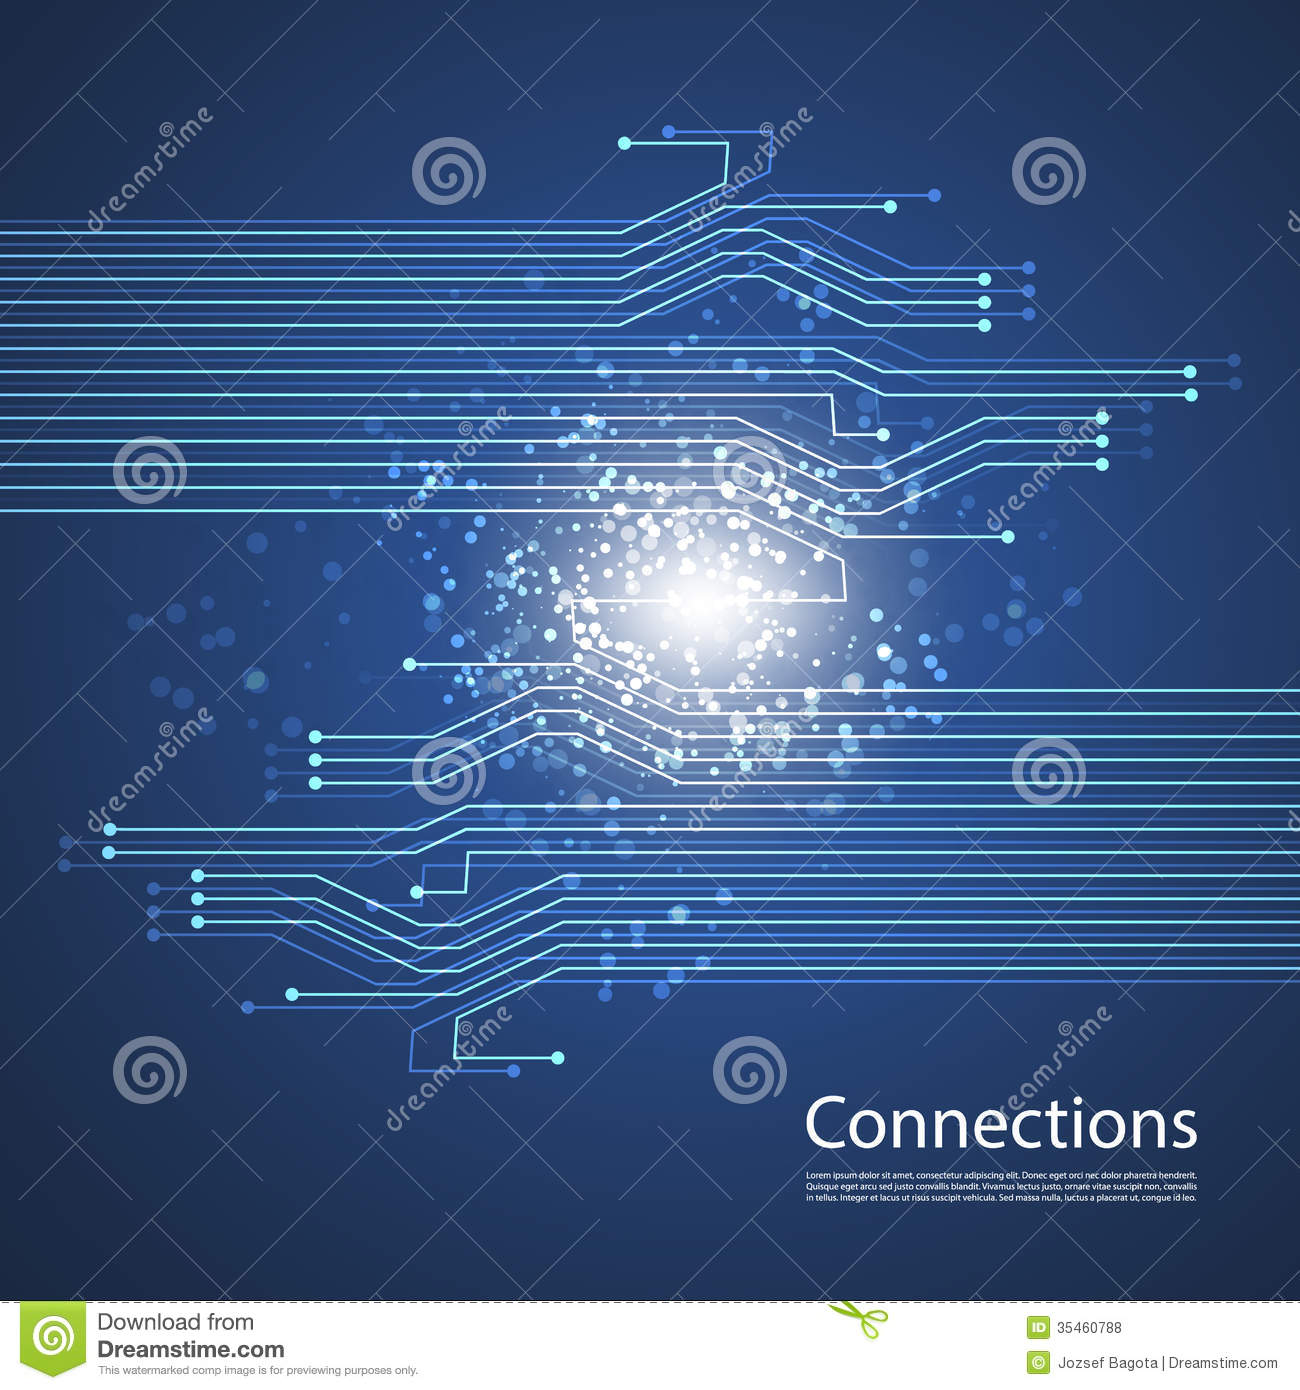 Connections networks graphic design stock vector image for Design teich